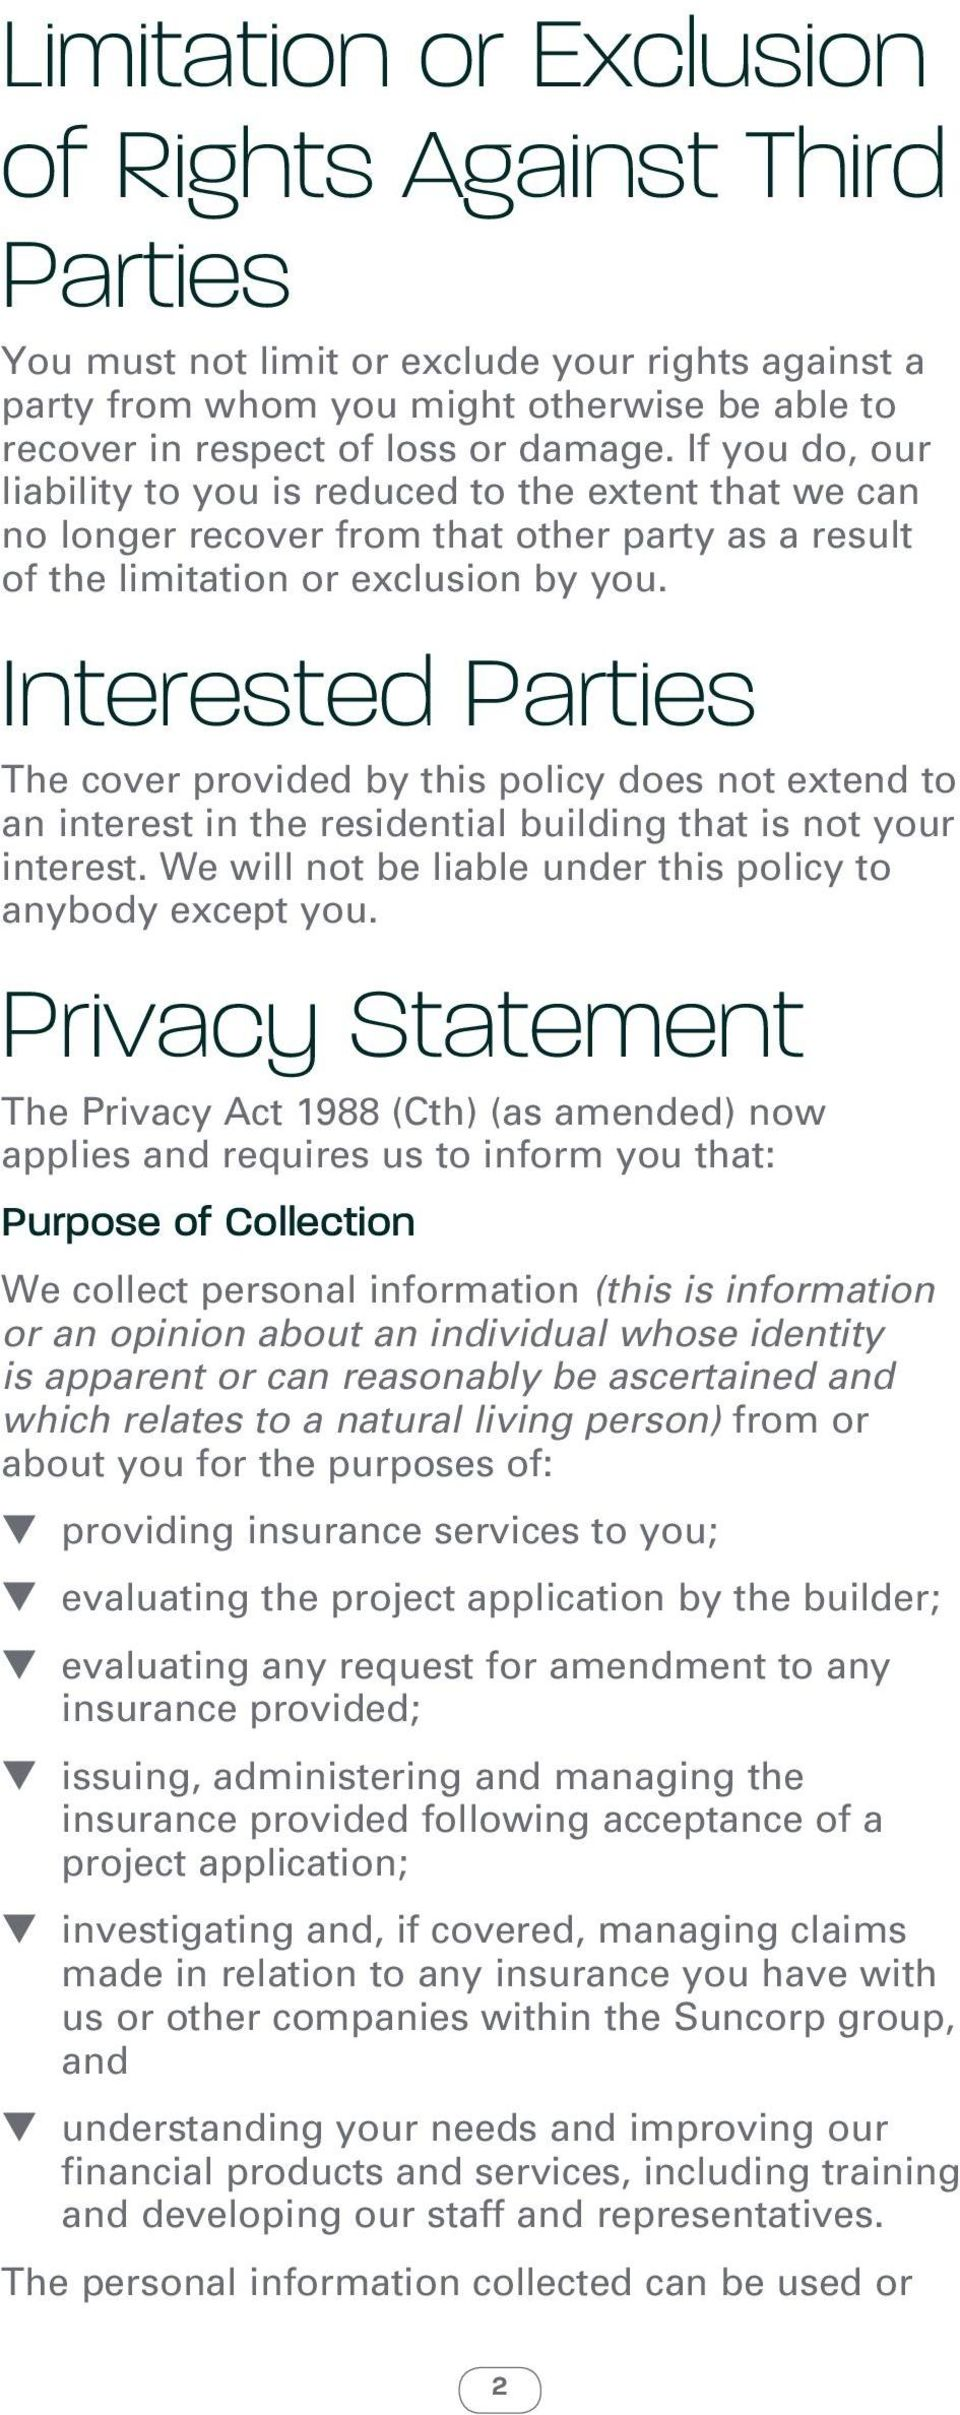 Interested Parties The cover provided by this policy does not extend to an interest in the residential building that is not your interest.